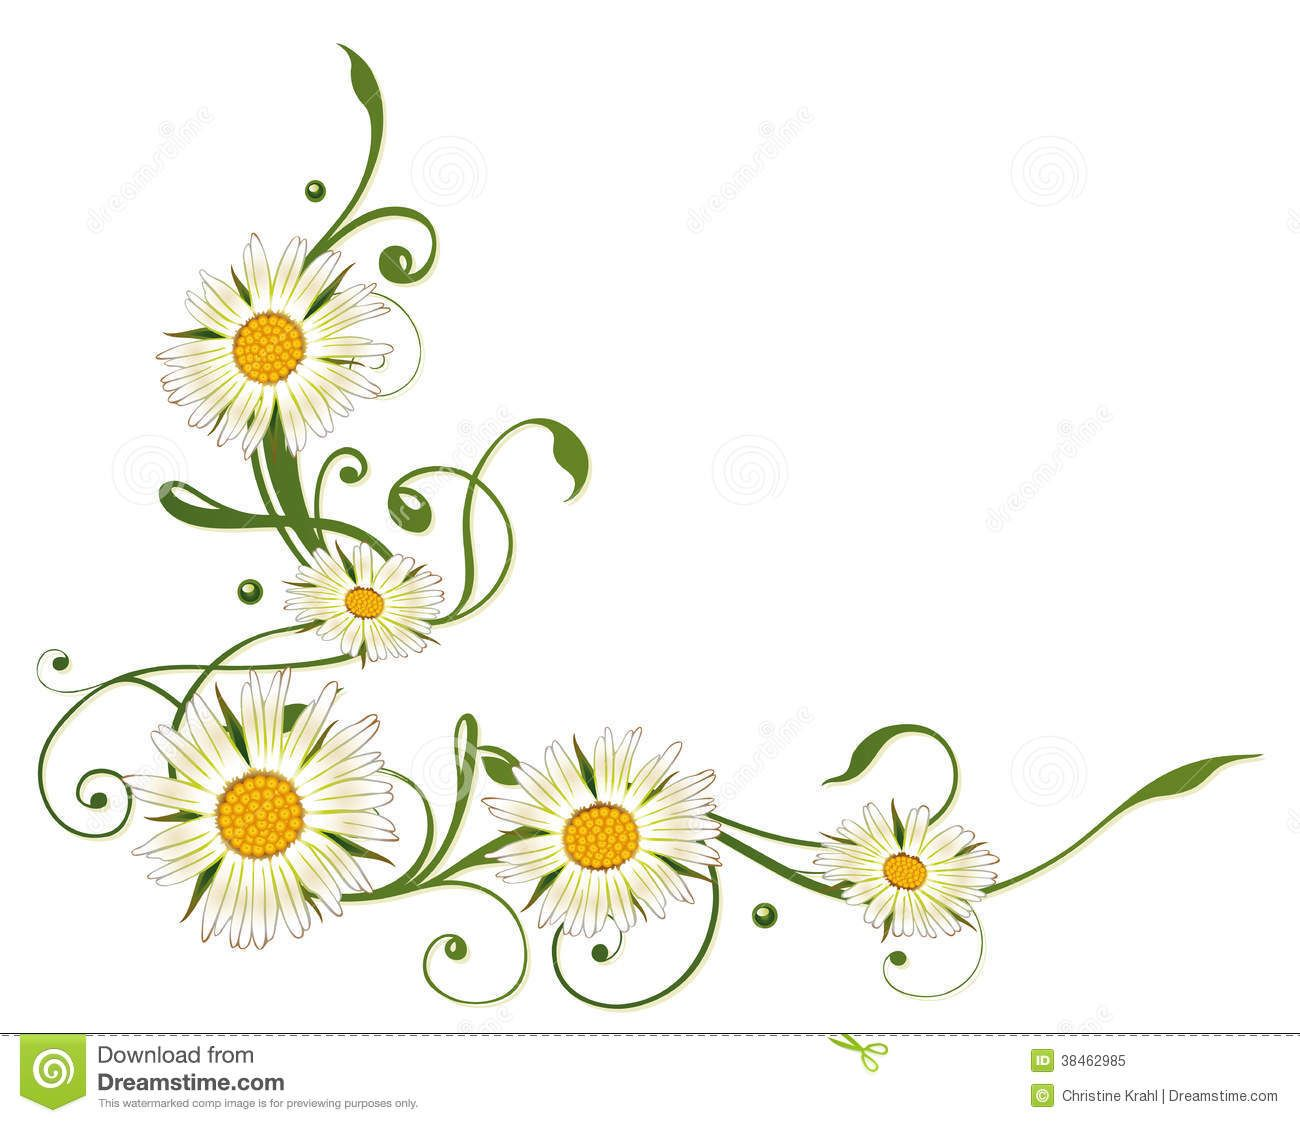 1e406fc491a4d9cf95c71138c955a121 marguerite daisy free daisy clipart rh pinterest co uk free daisy clipart black and white free daisy clipart black and white